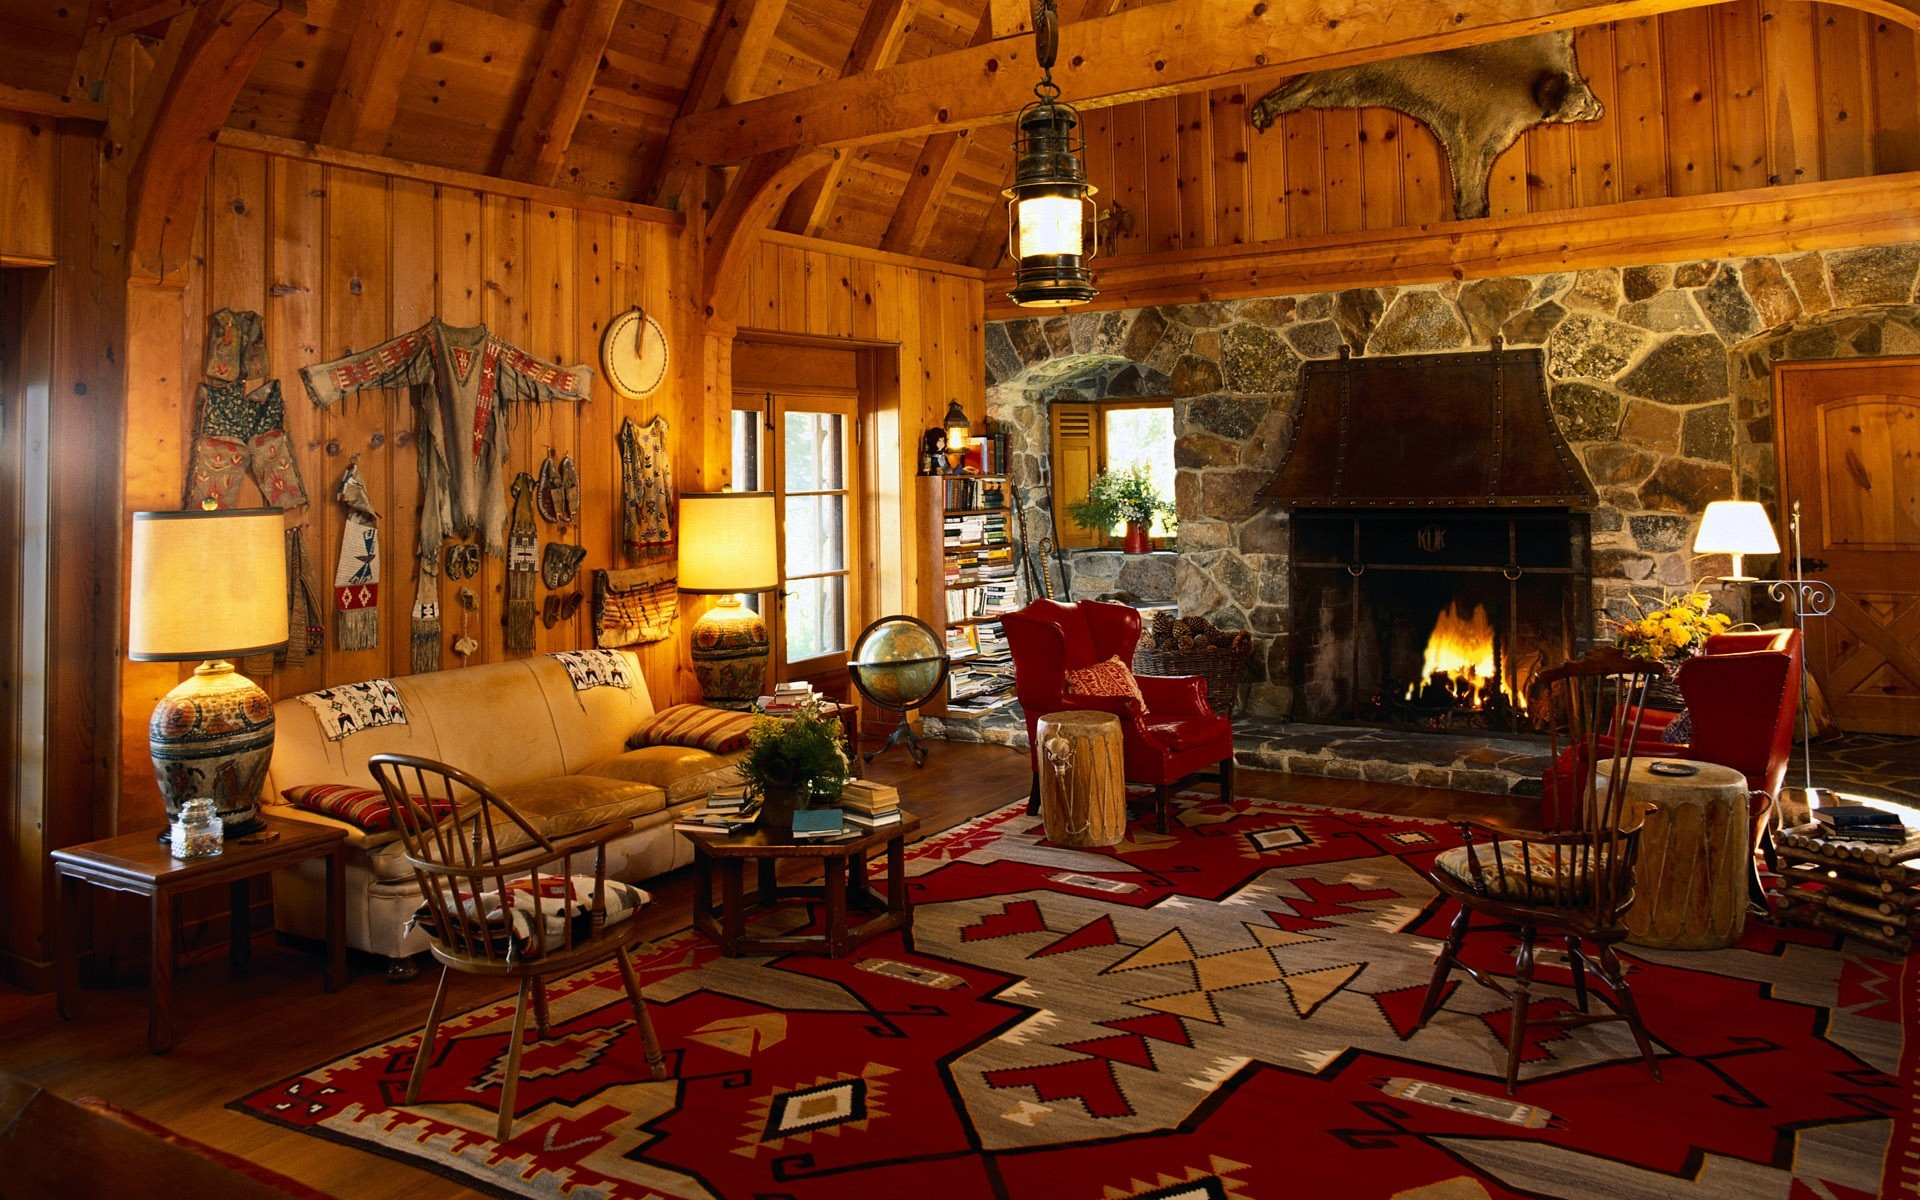 room carpet fireplaces HD Wallpaper